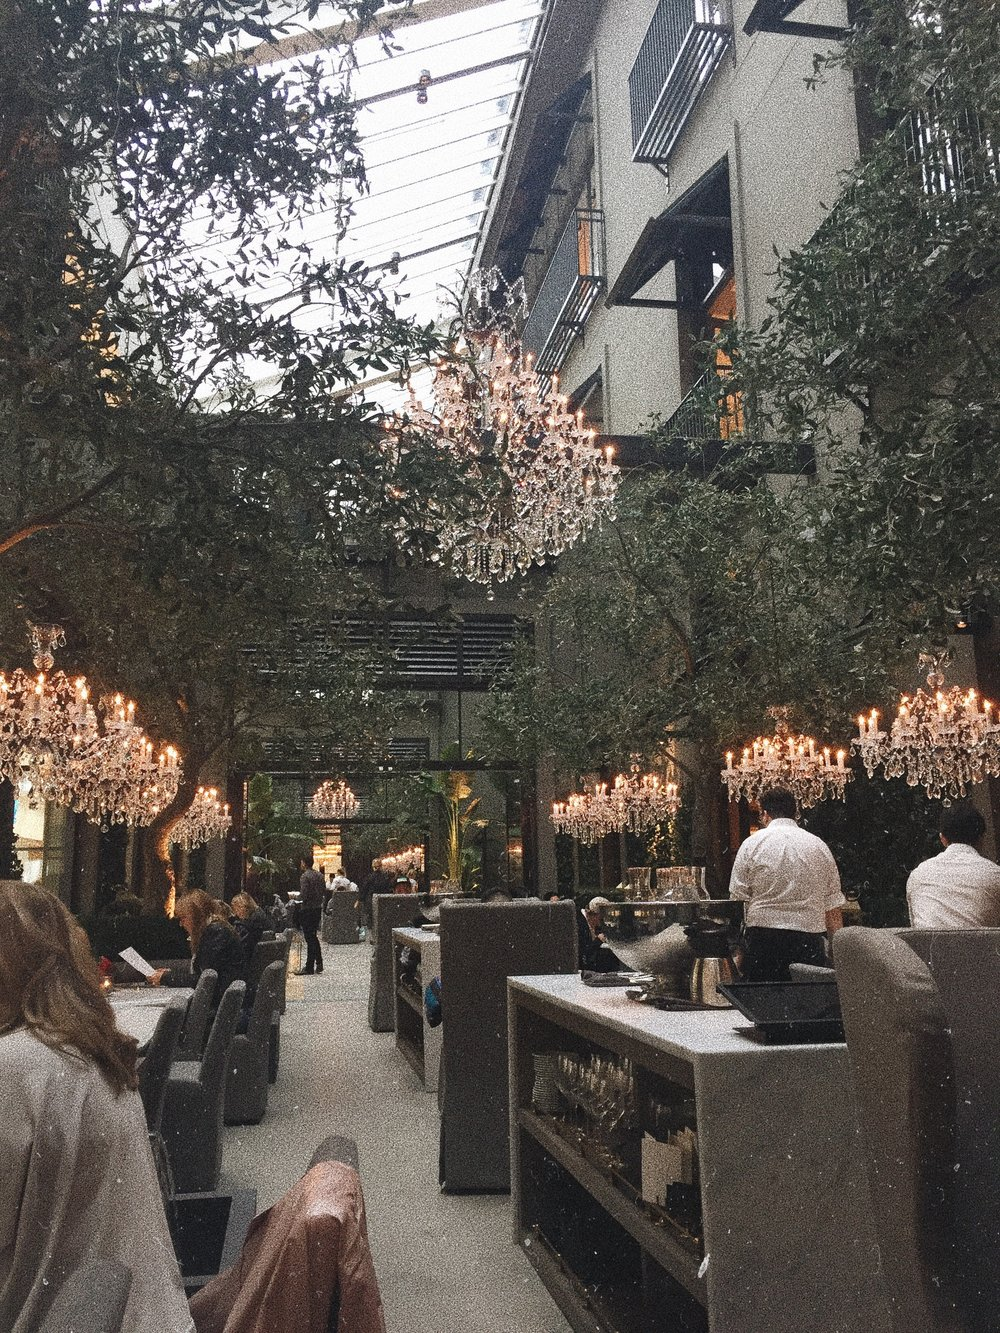 restoration hardware toronto yorkdale mall brunch lunch